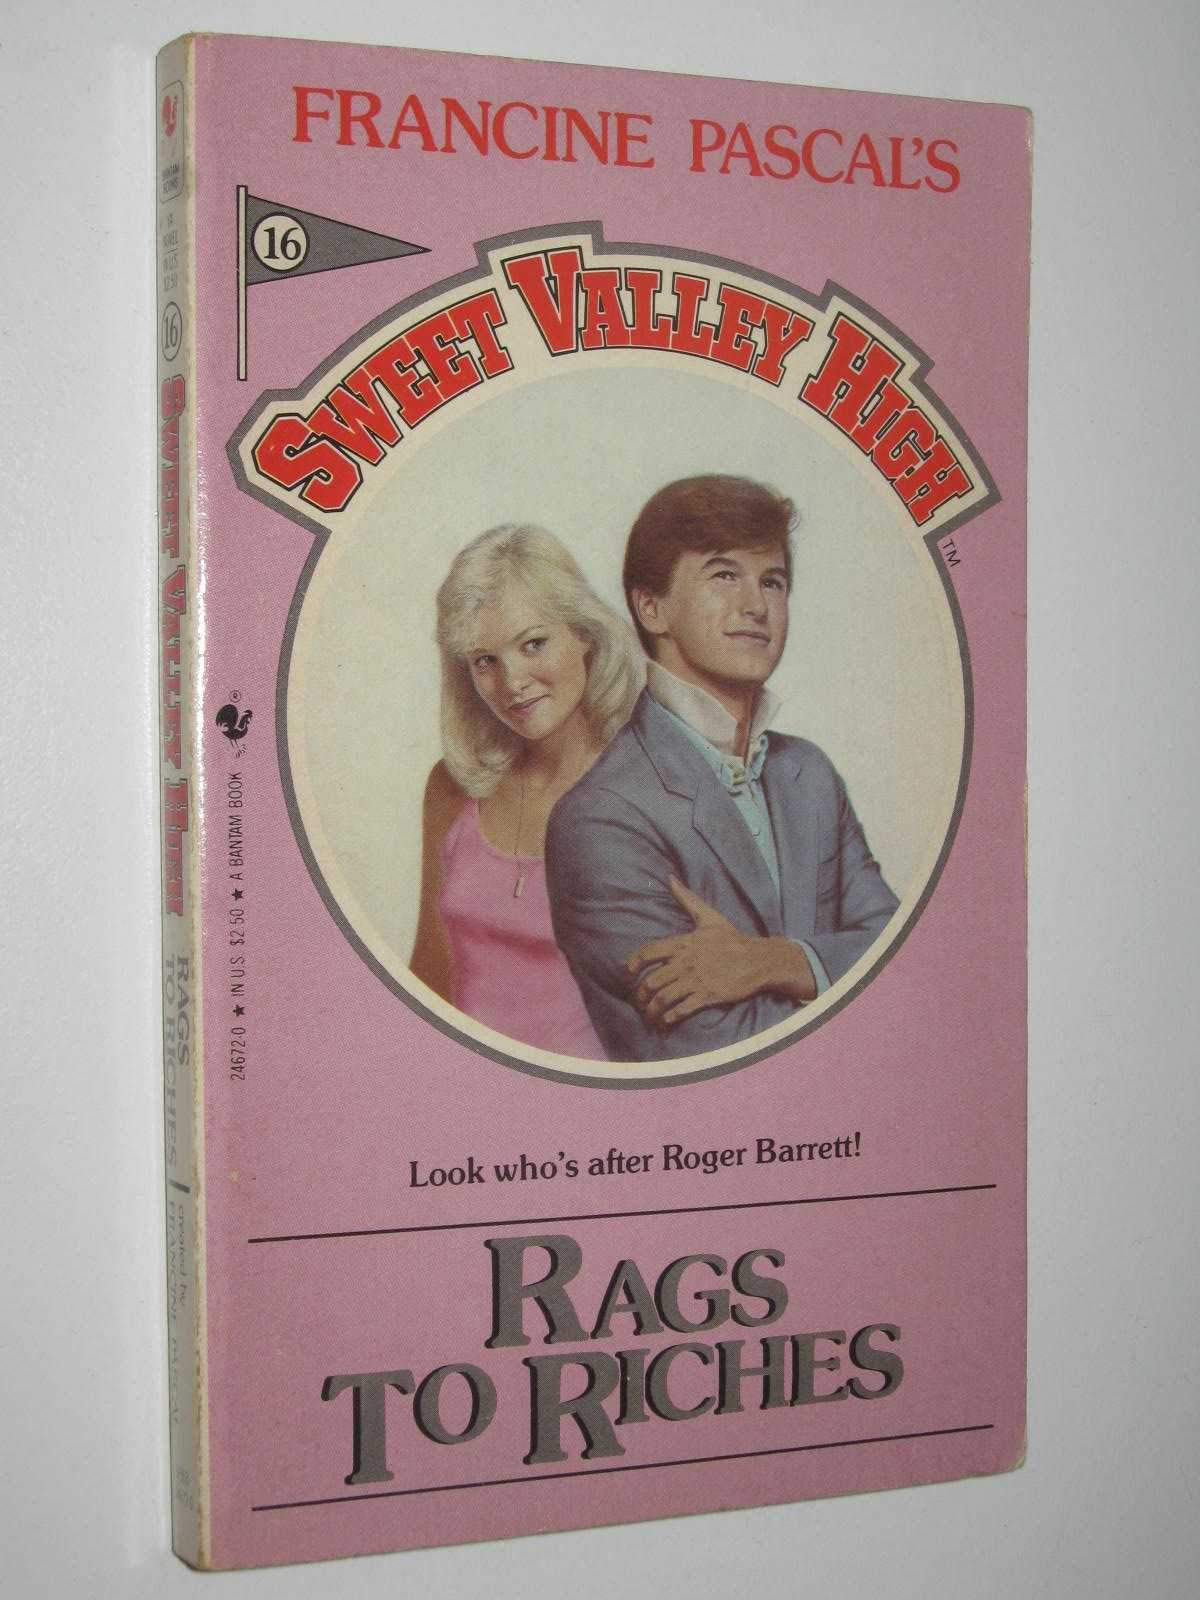 Image for Rags to Riches - Sweet Valley High Series #16